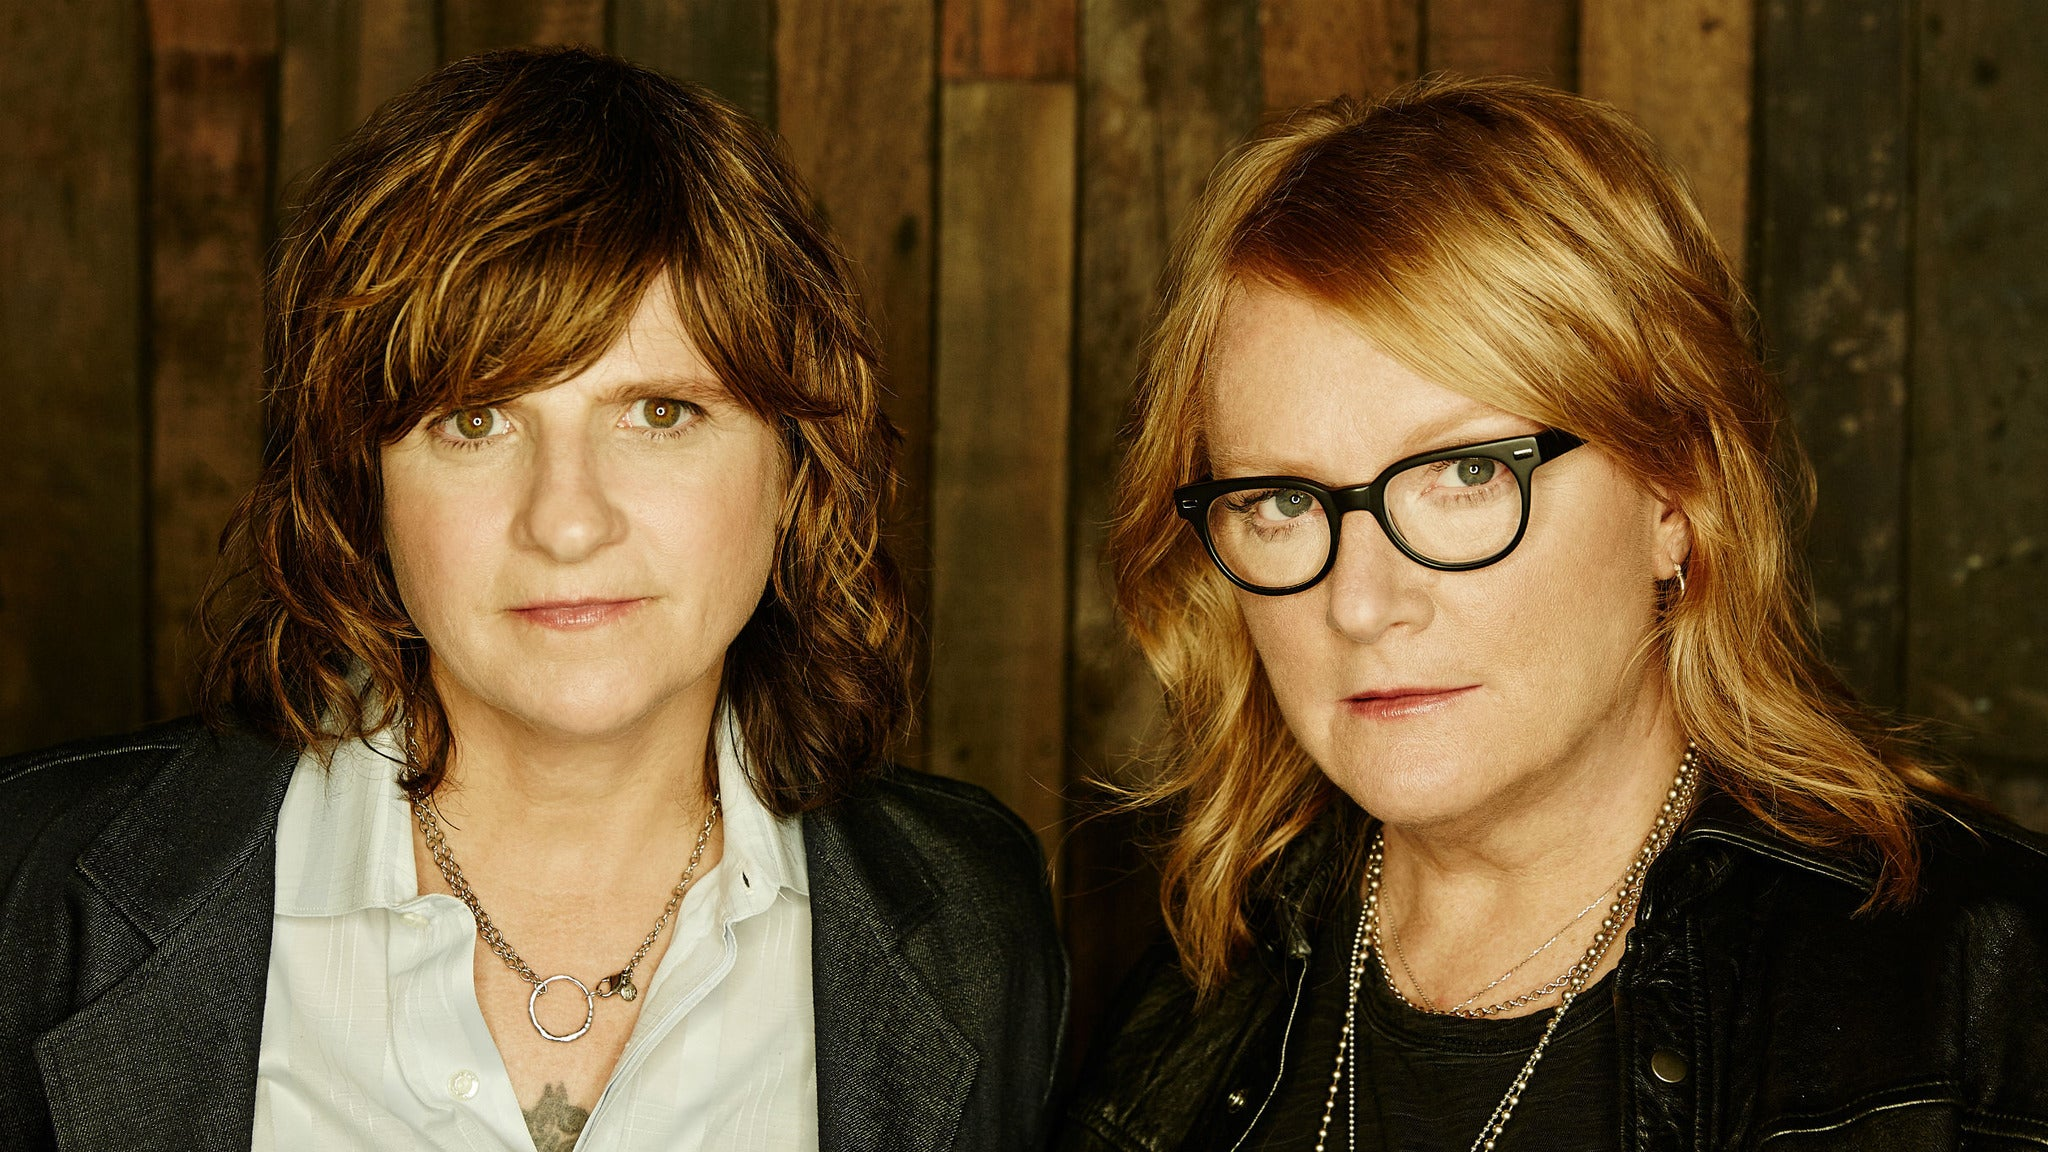 Indigo Girls pre-sale code for early tickets in Asheville